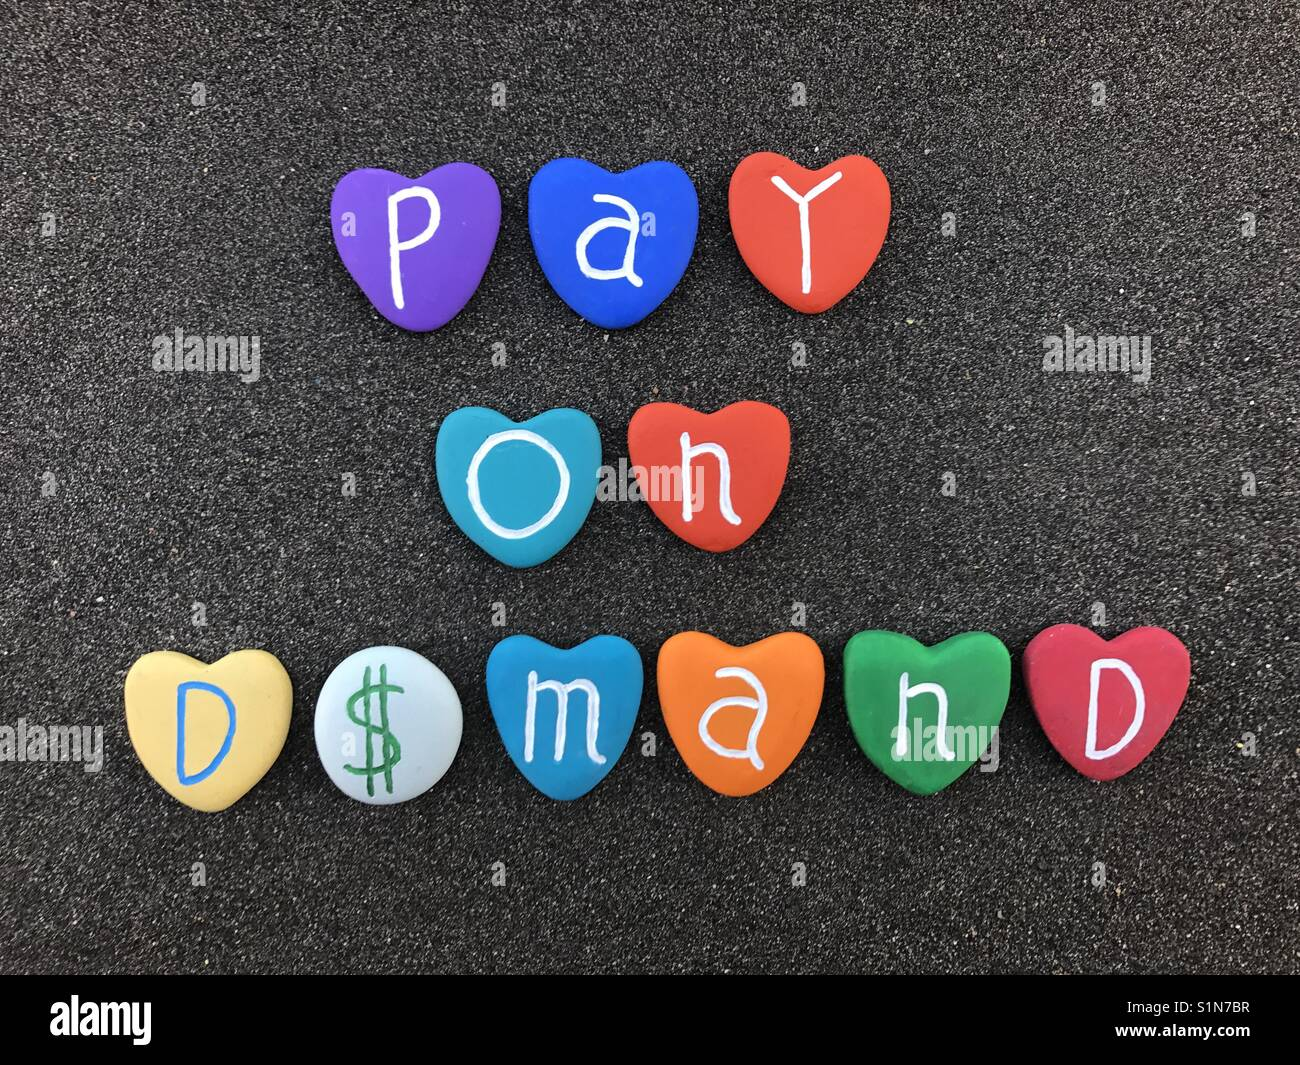 Pay On Demand With Us Dollar Symbol Stock Photo Royalty Free Image